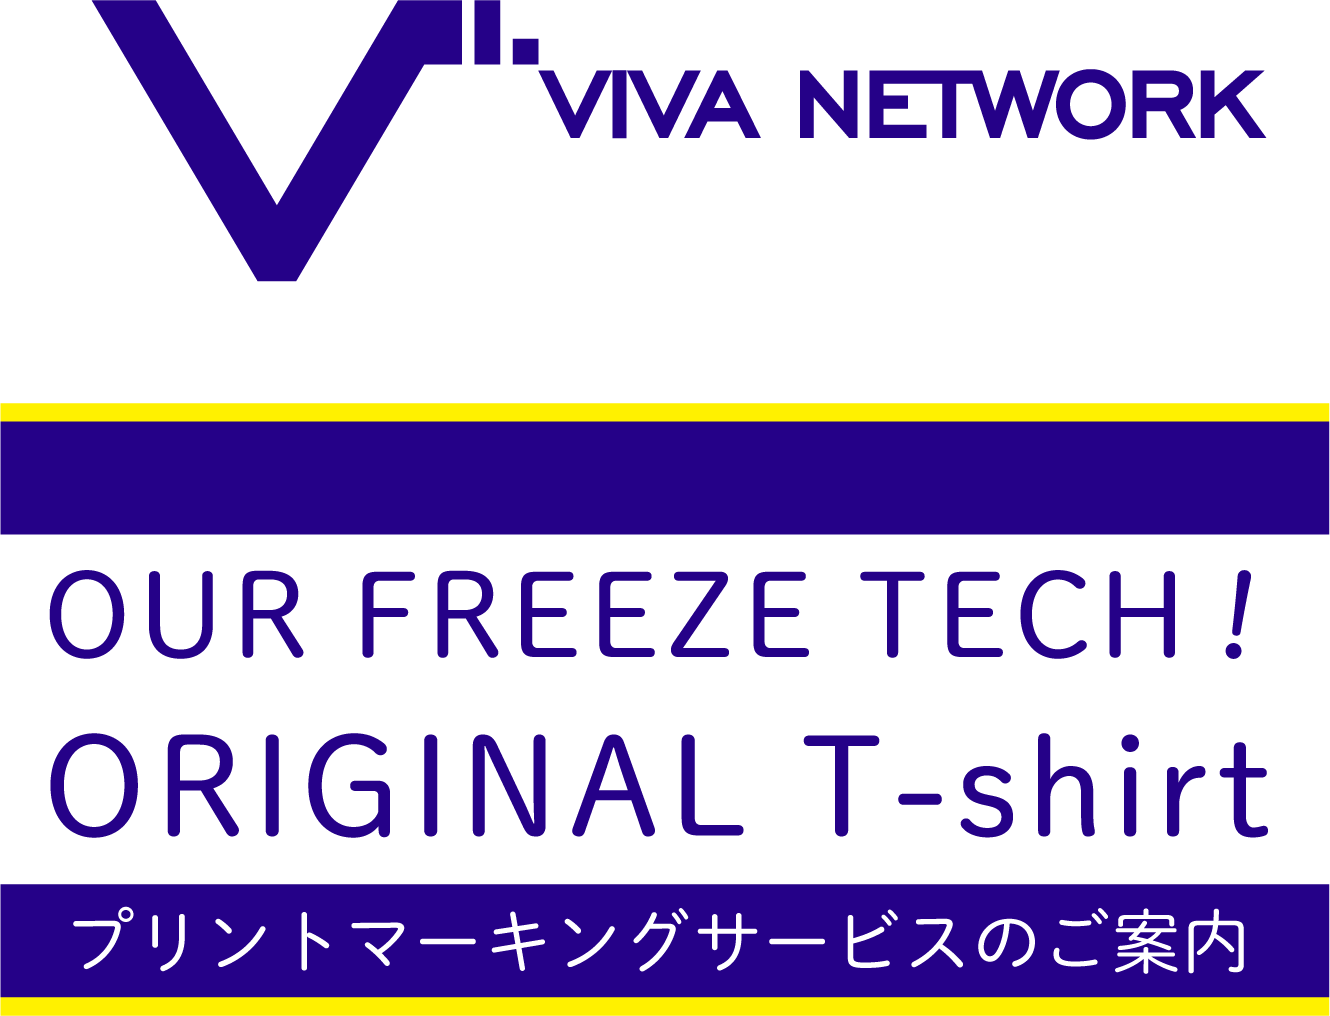 OUR FREEZE TECH! ORIGINAL T-shirt プリントマーキングサービスのご案内